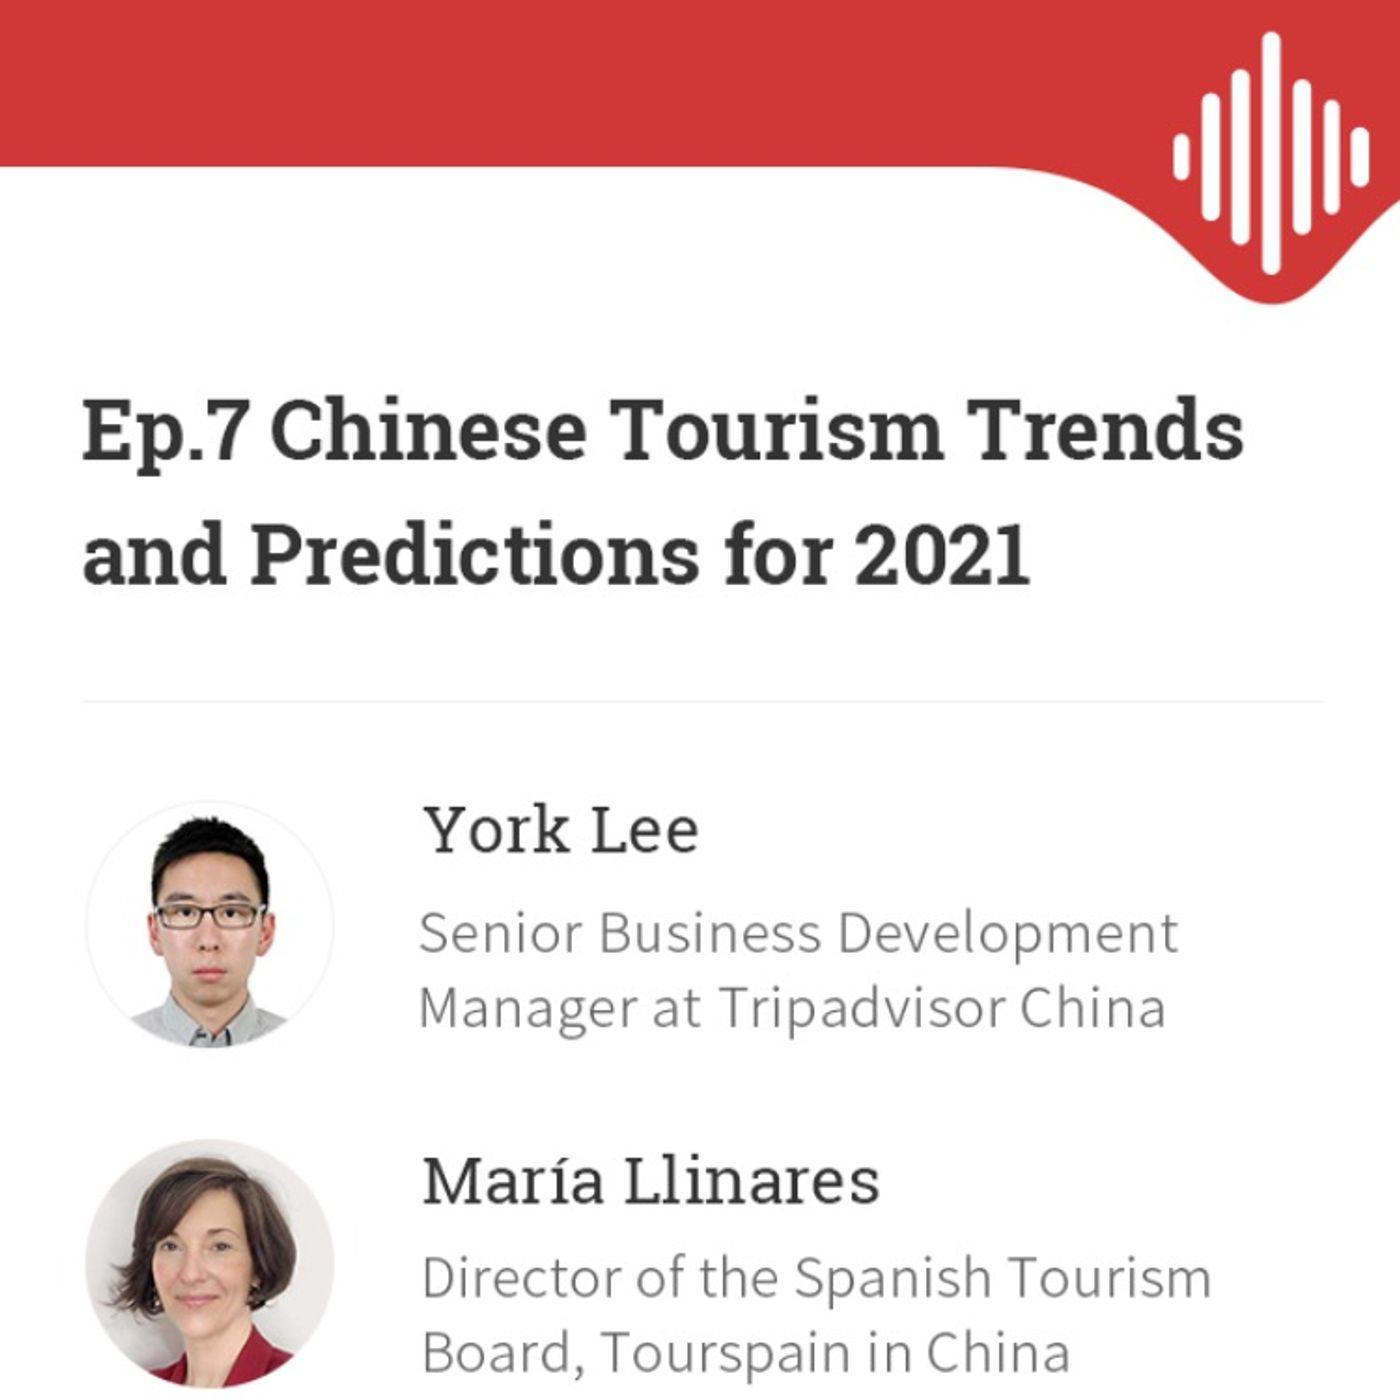 Ep.7 Chinese Tourism Trends and Predictions for 2021, with York Lee of Tripadvisor and María Llinares of Tourspain